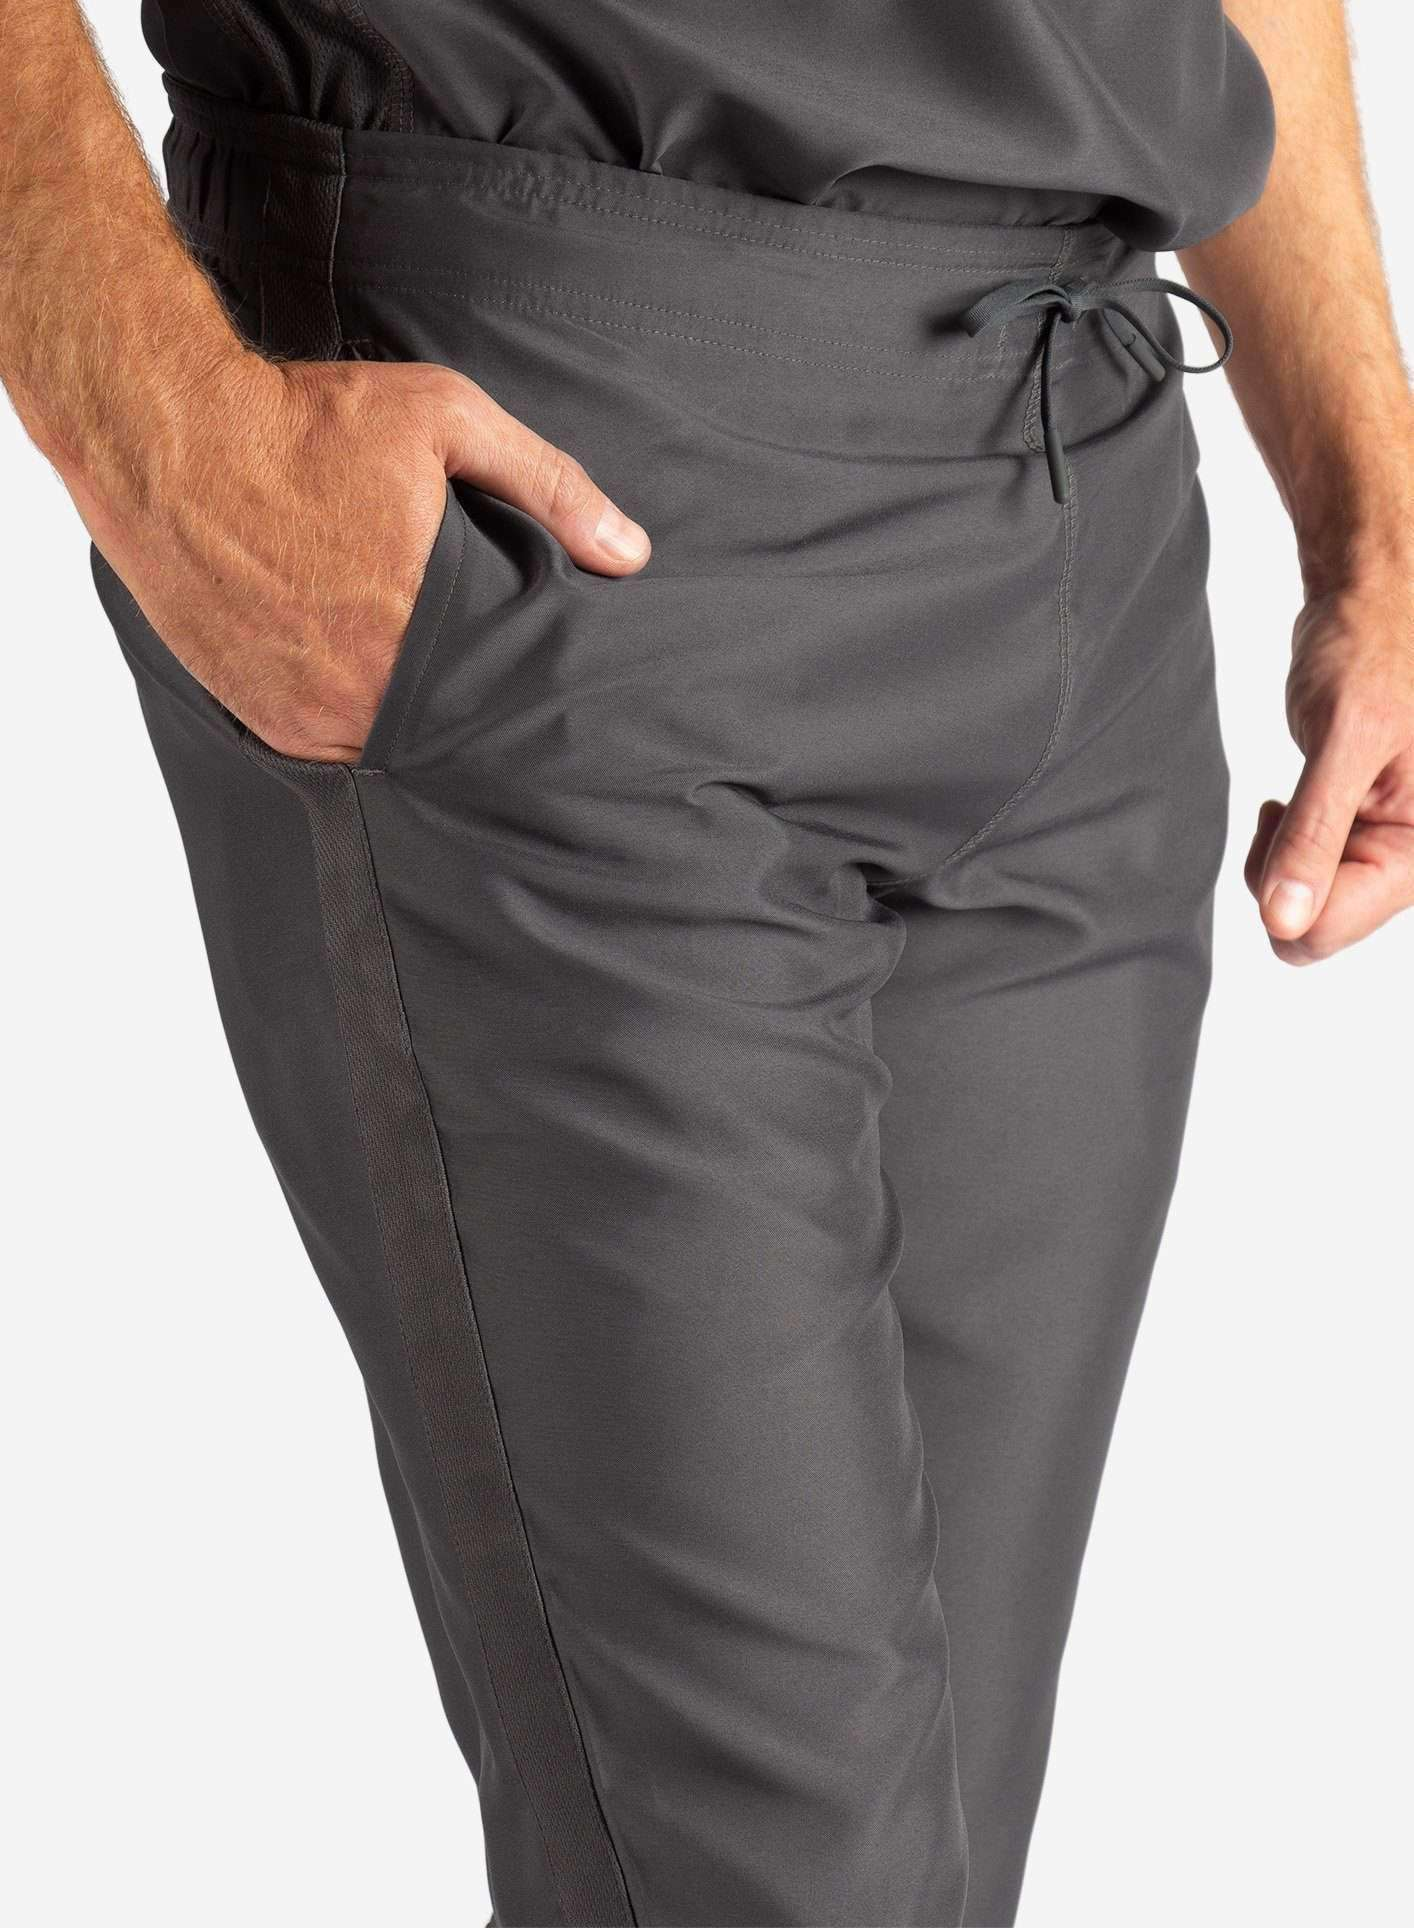 Men's Slim Fit Scrub Pants in Dark Grey Waistband View